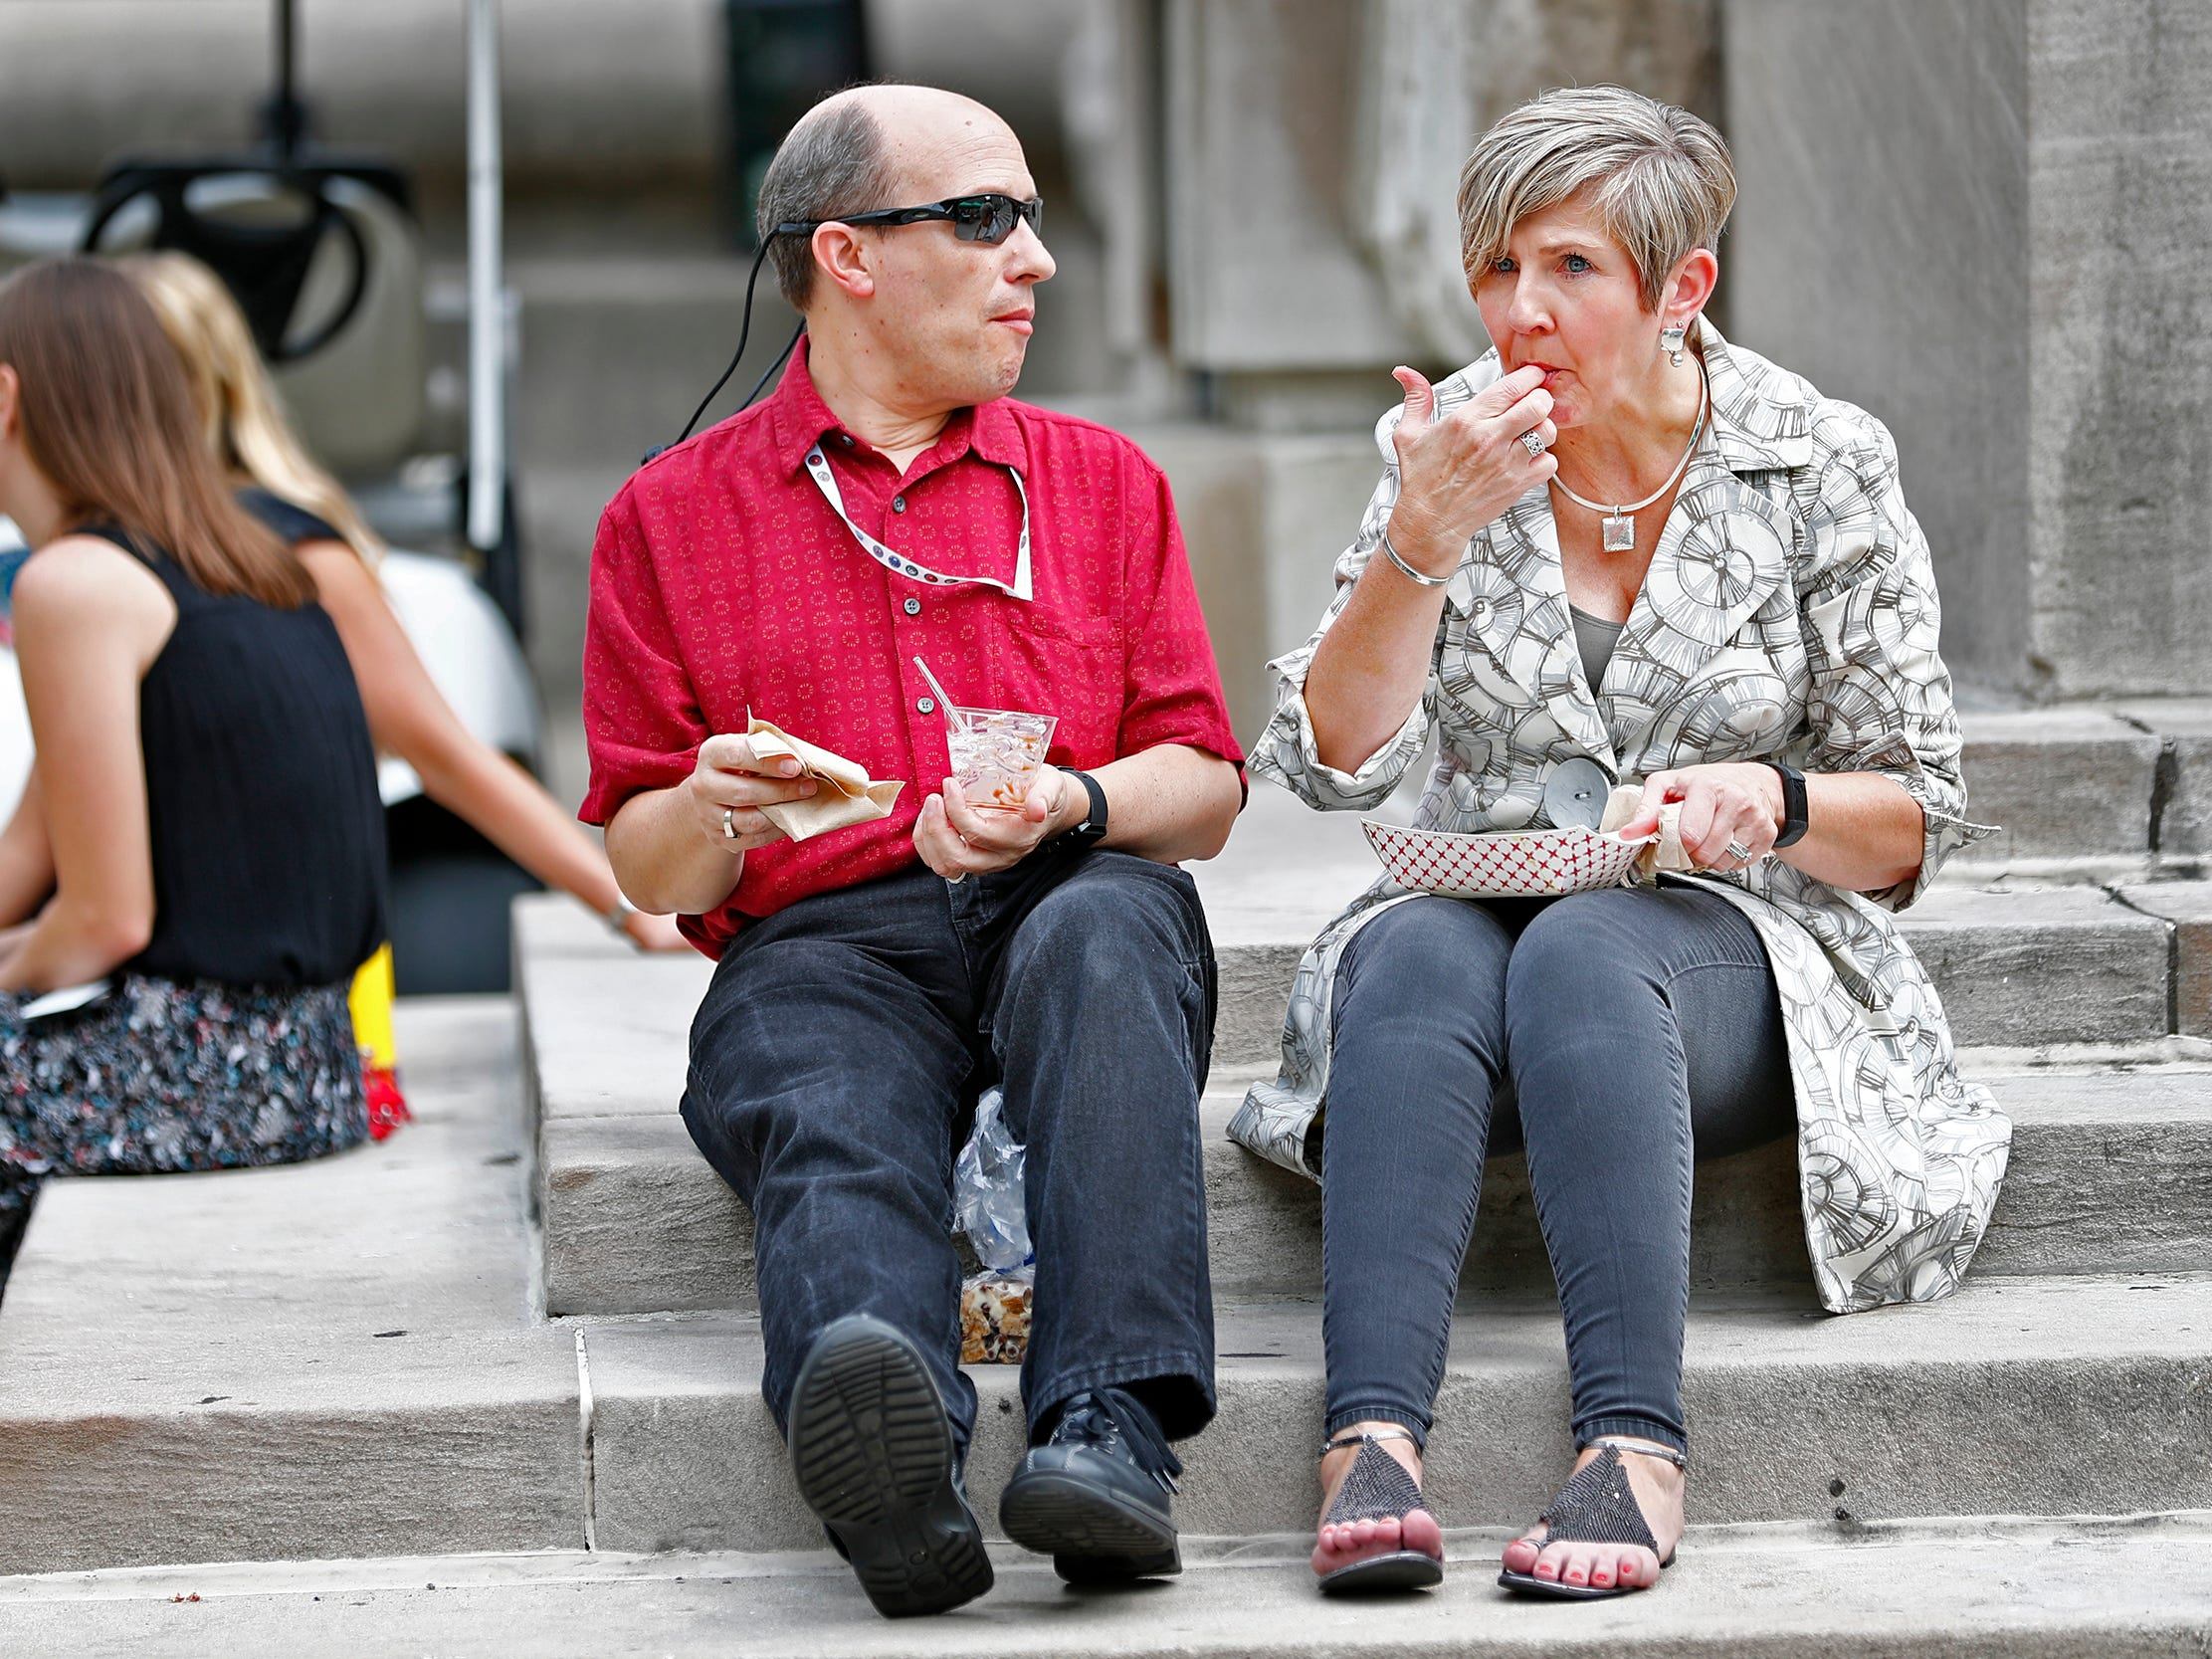 Ken and Teresa Graham enjoy a tasty treat during their lunch break at the Girl Scouts' S'mores on the Circle event, Friday, Aug. 10, 2018.  The event celebrated National S'mores Day.  Seven local chefs were featured, creating gourmet s'mores treats, sold as a fundraiser.  Proceeds go for financial assistance for Girl Scouts, helping all girls who want to be a girl scout participating in hands-on adventures and STEM activities.